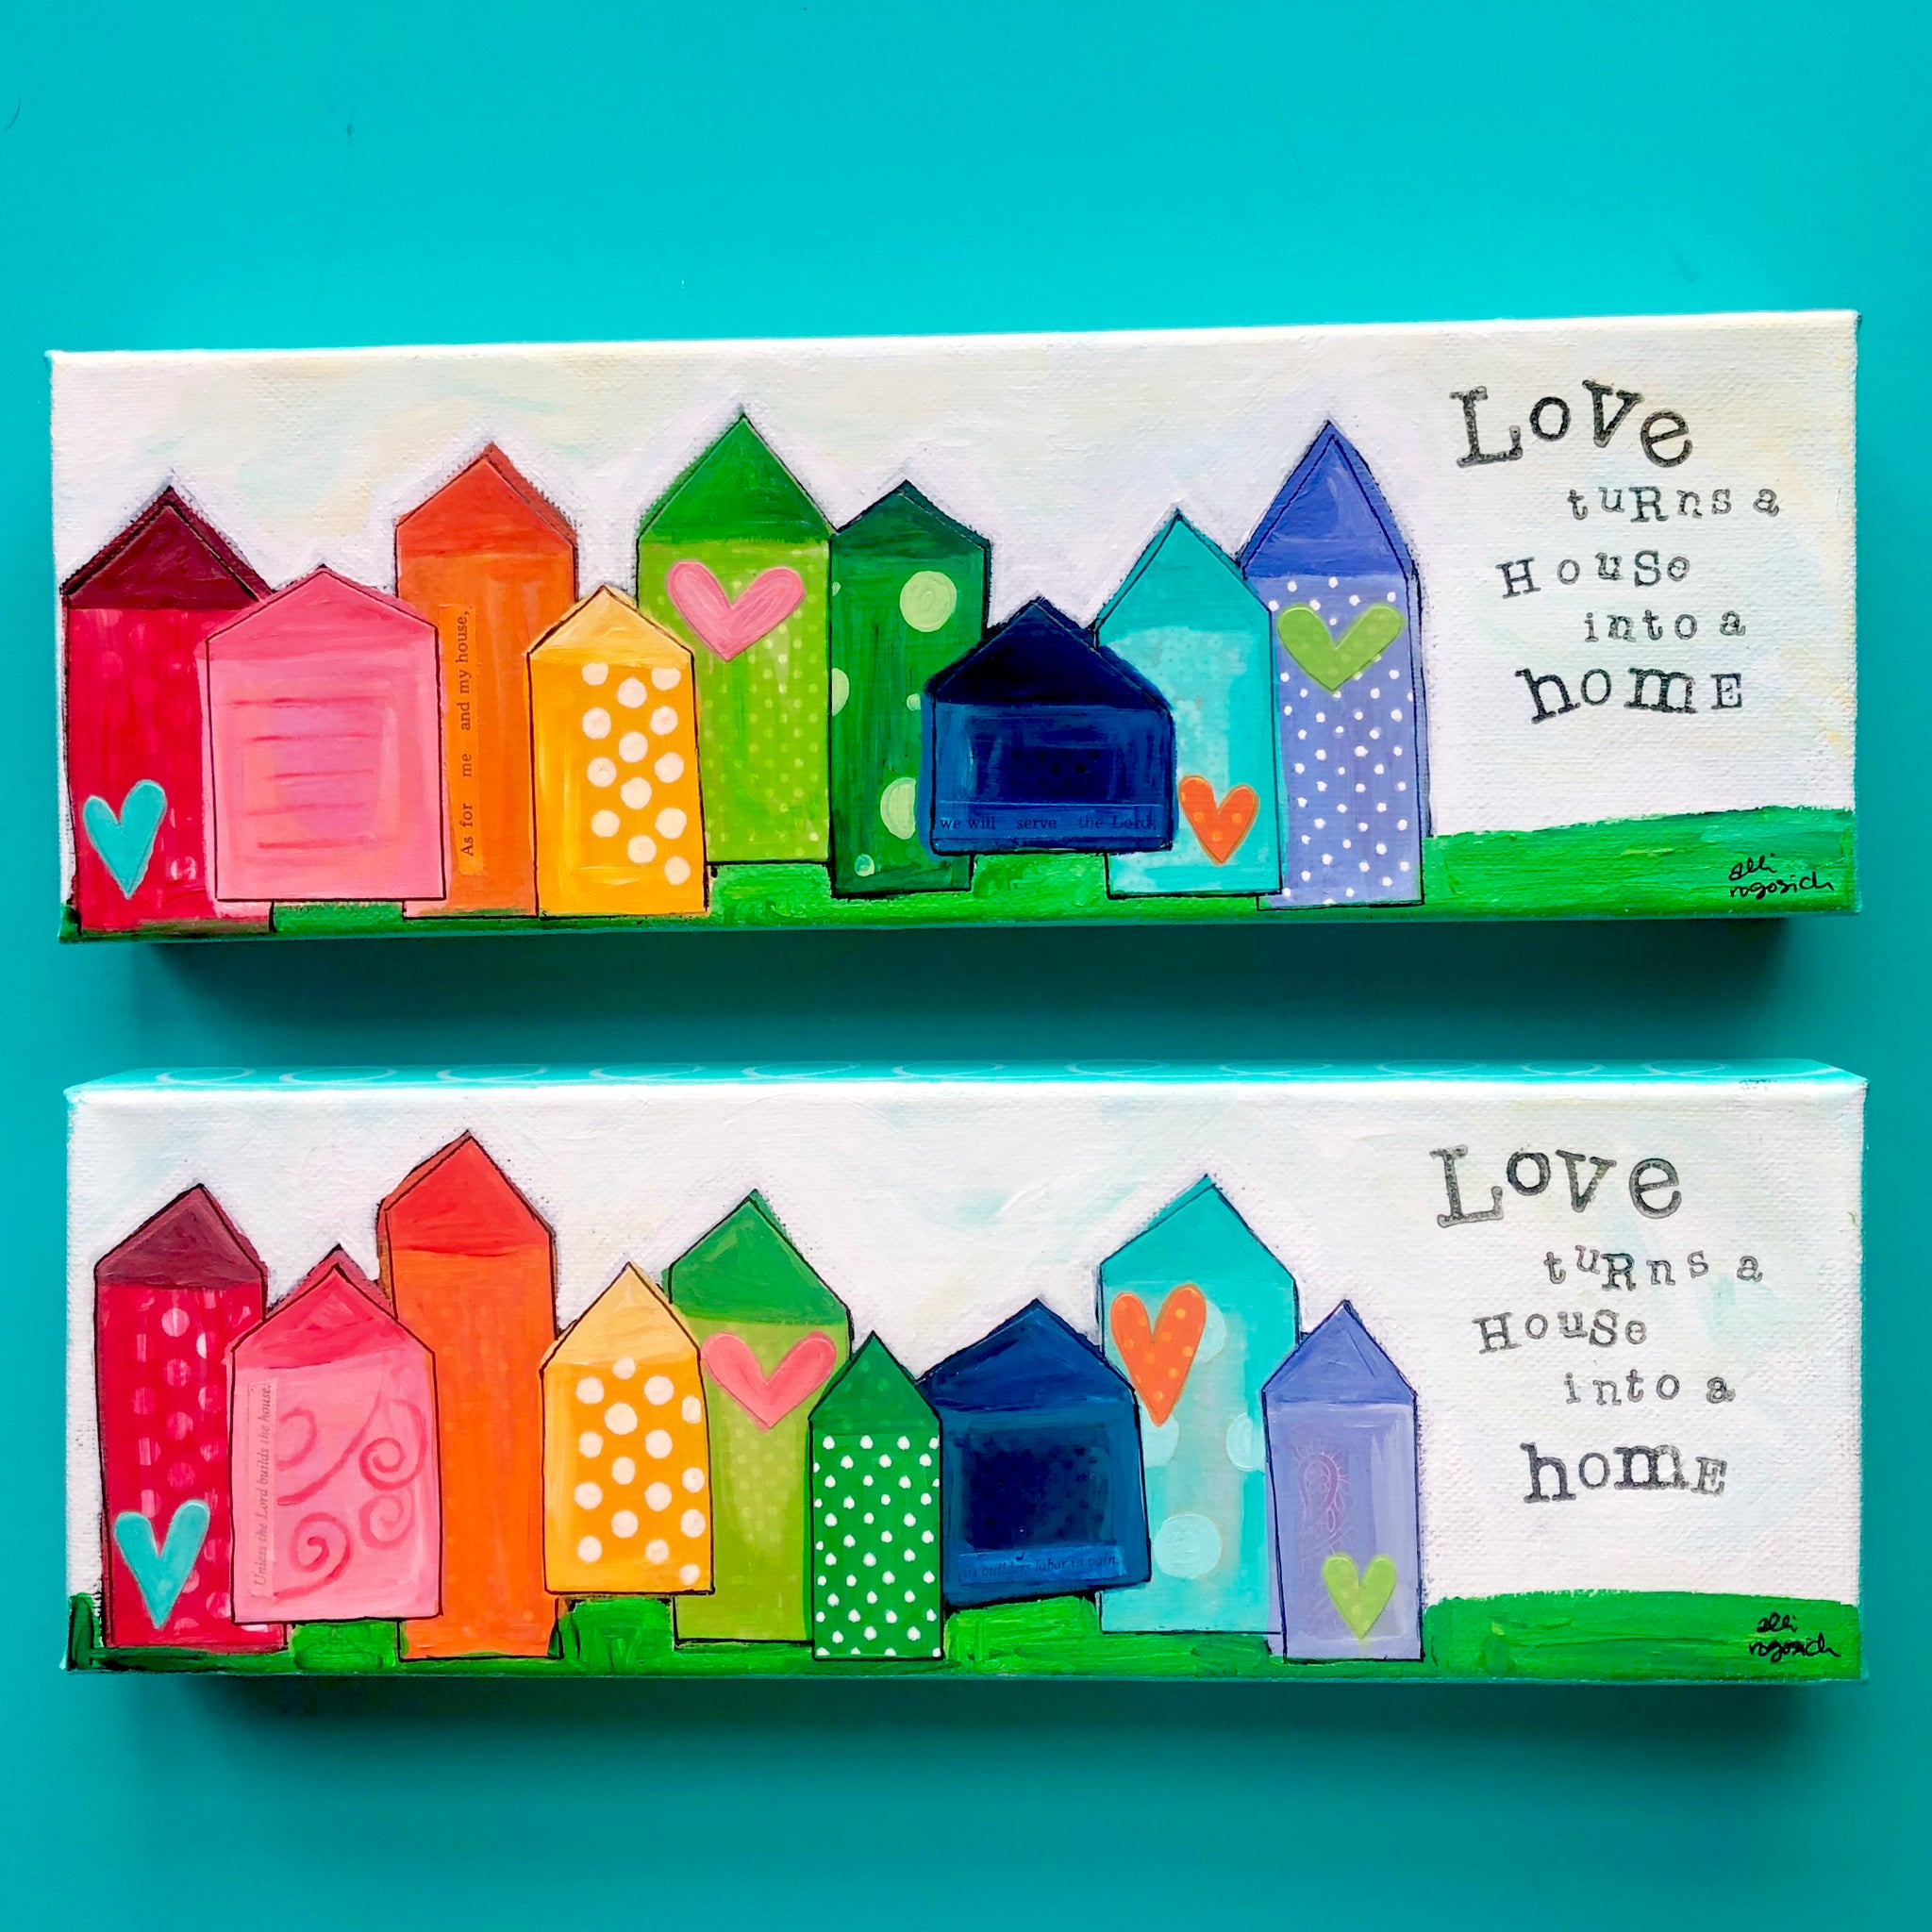 Rainbow Love Town. Whimsical Houses. Heart artwork. Colorful mixed media art on canvas.